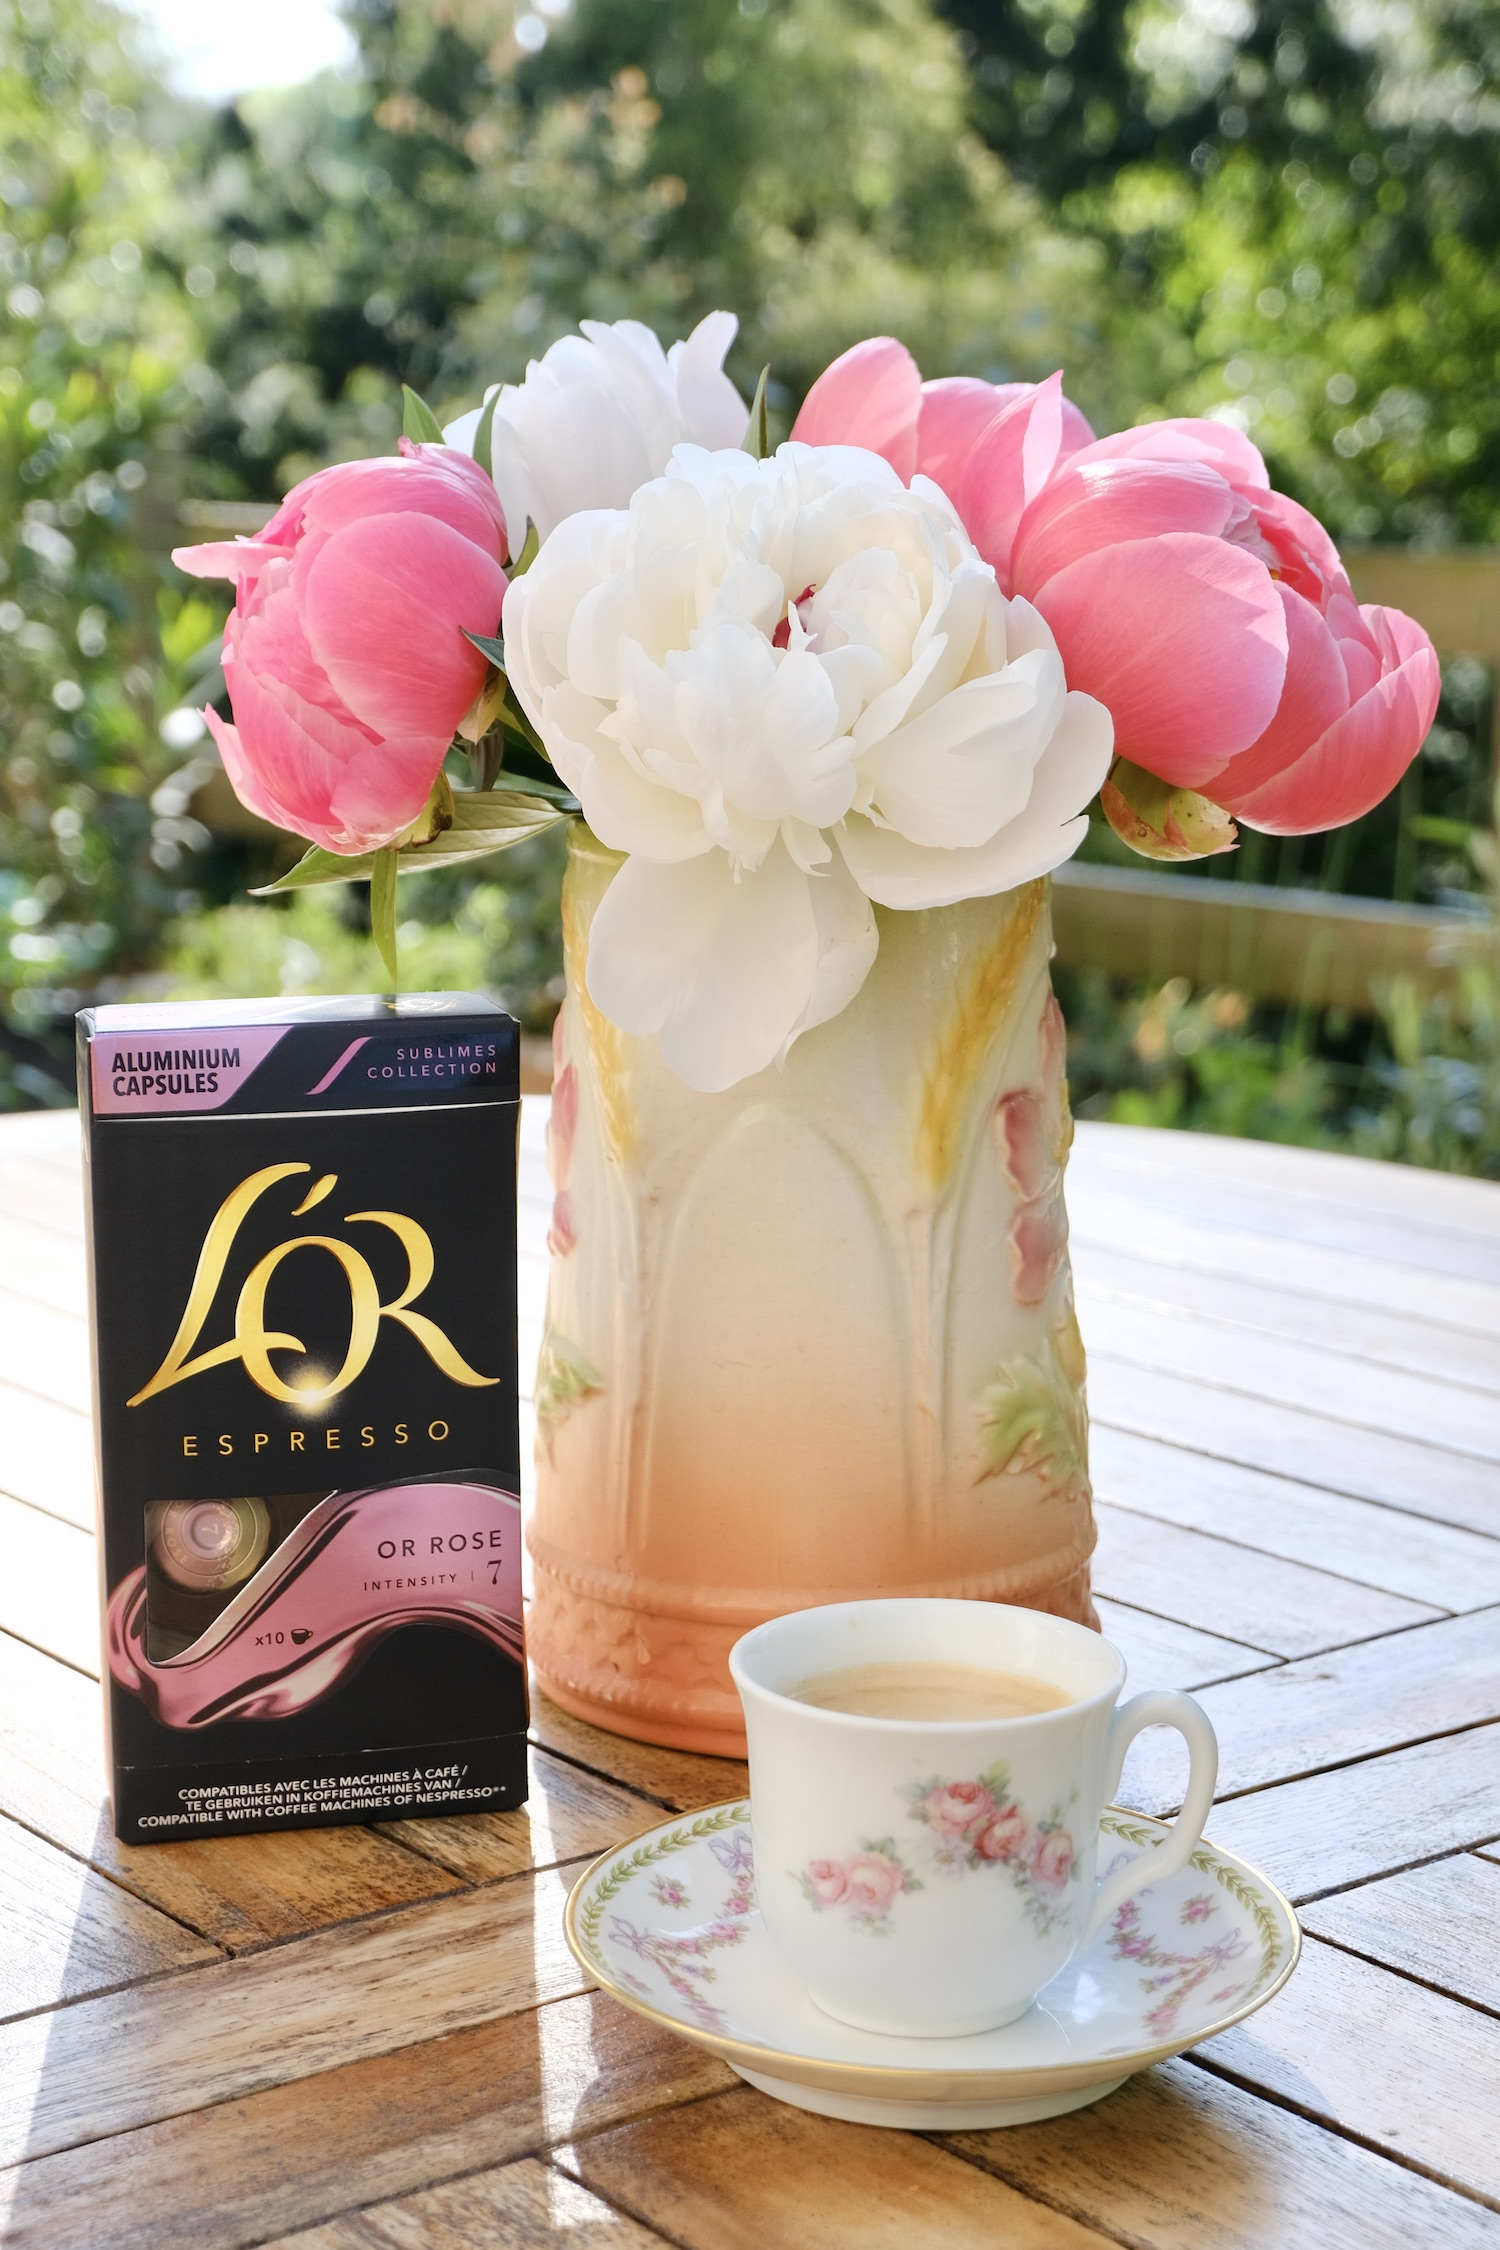 Rose espresso capsules with peonies and an antique espresso cup